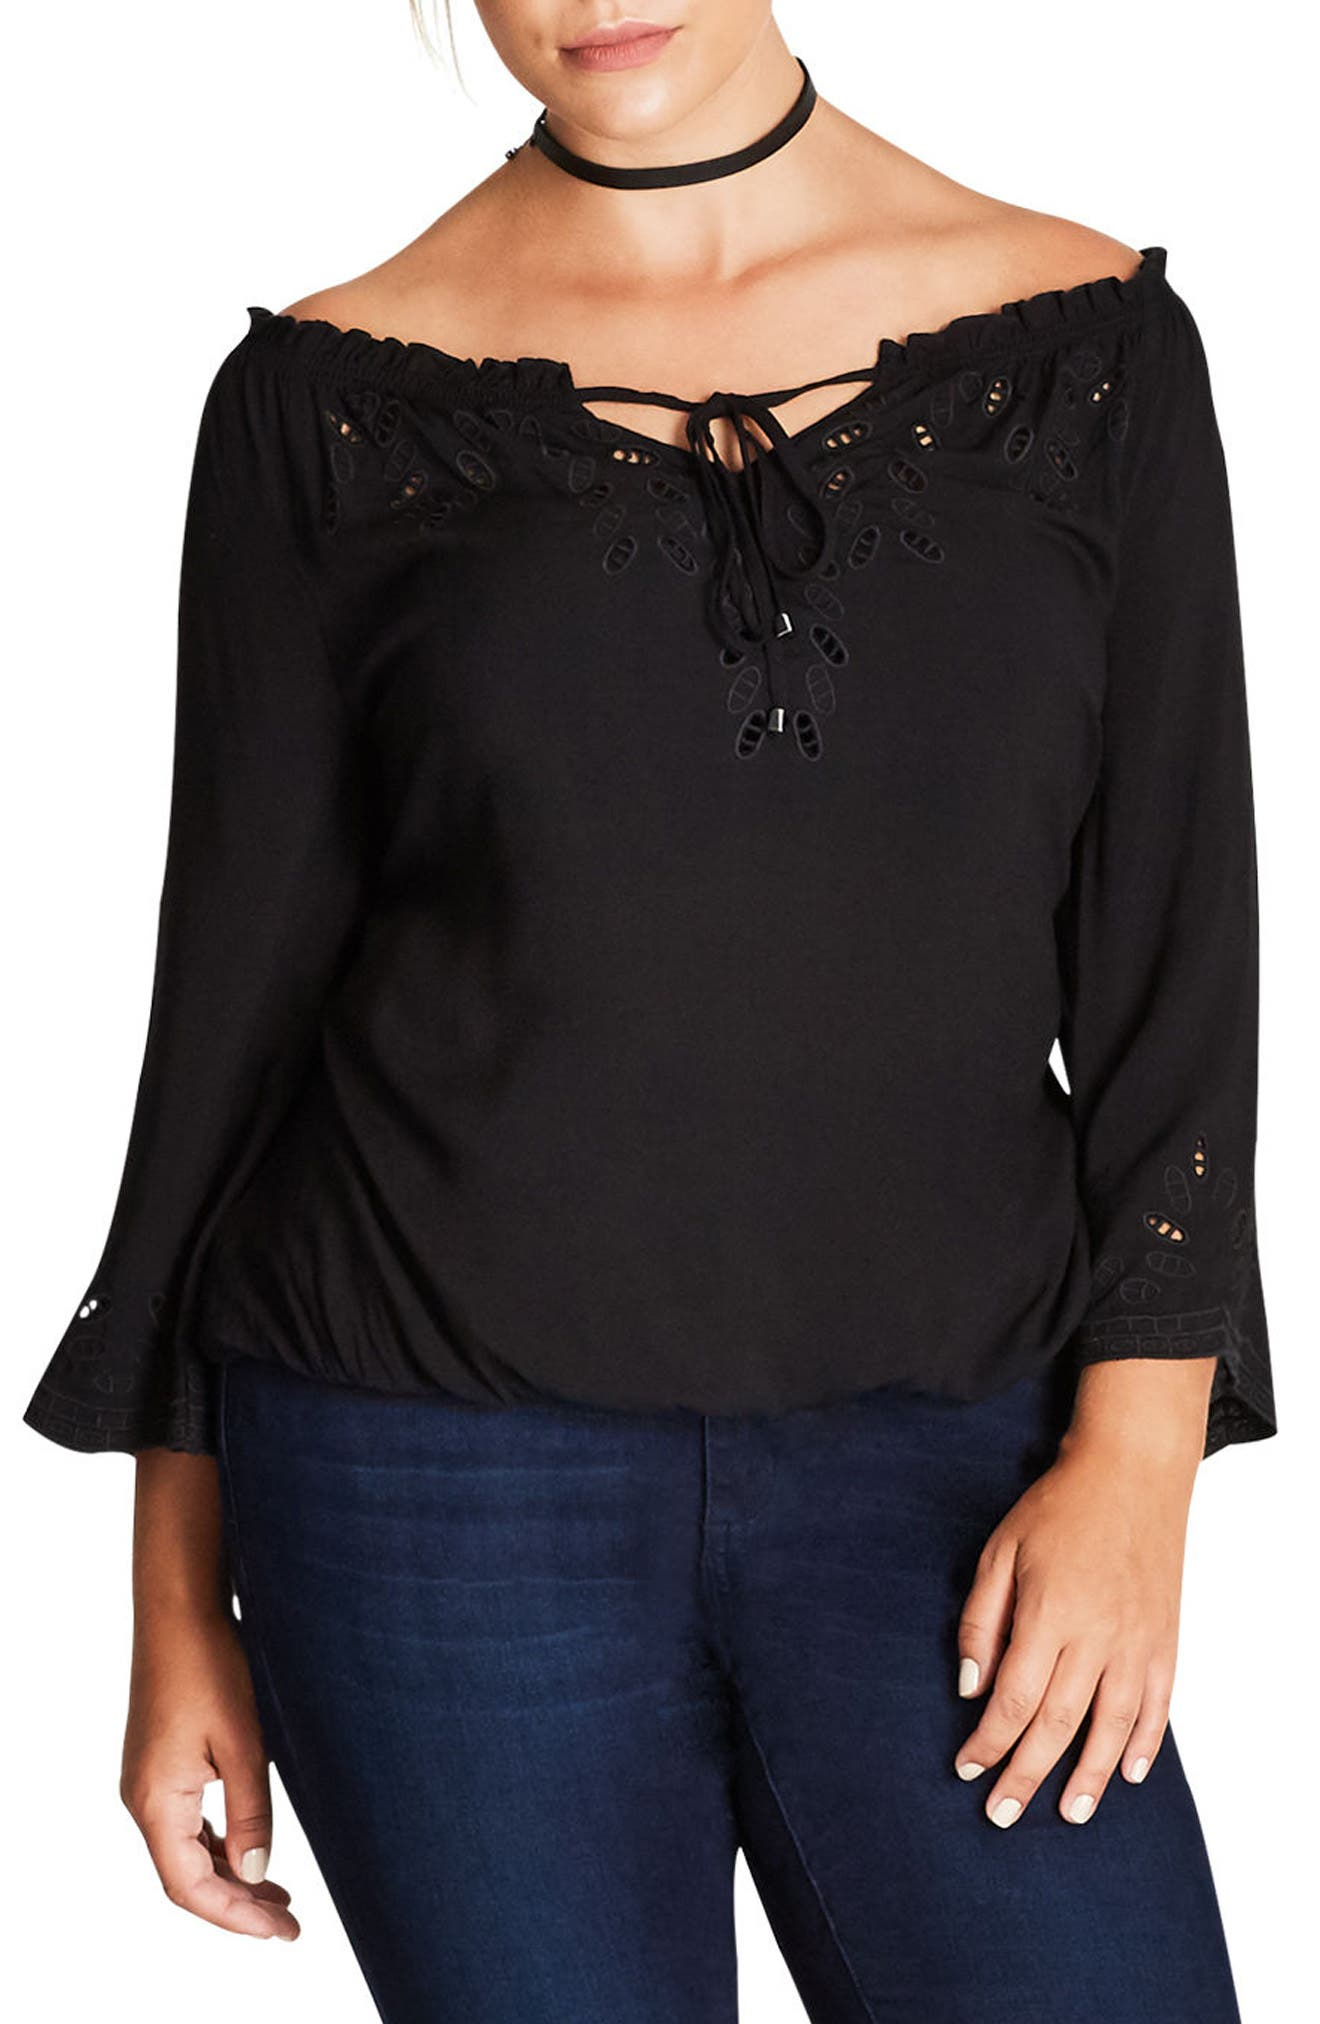 Alternate Image 1 Selected - City Chic Detail Lover Shirt (Plus Size)